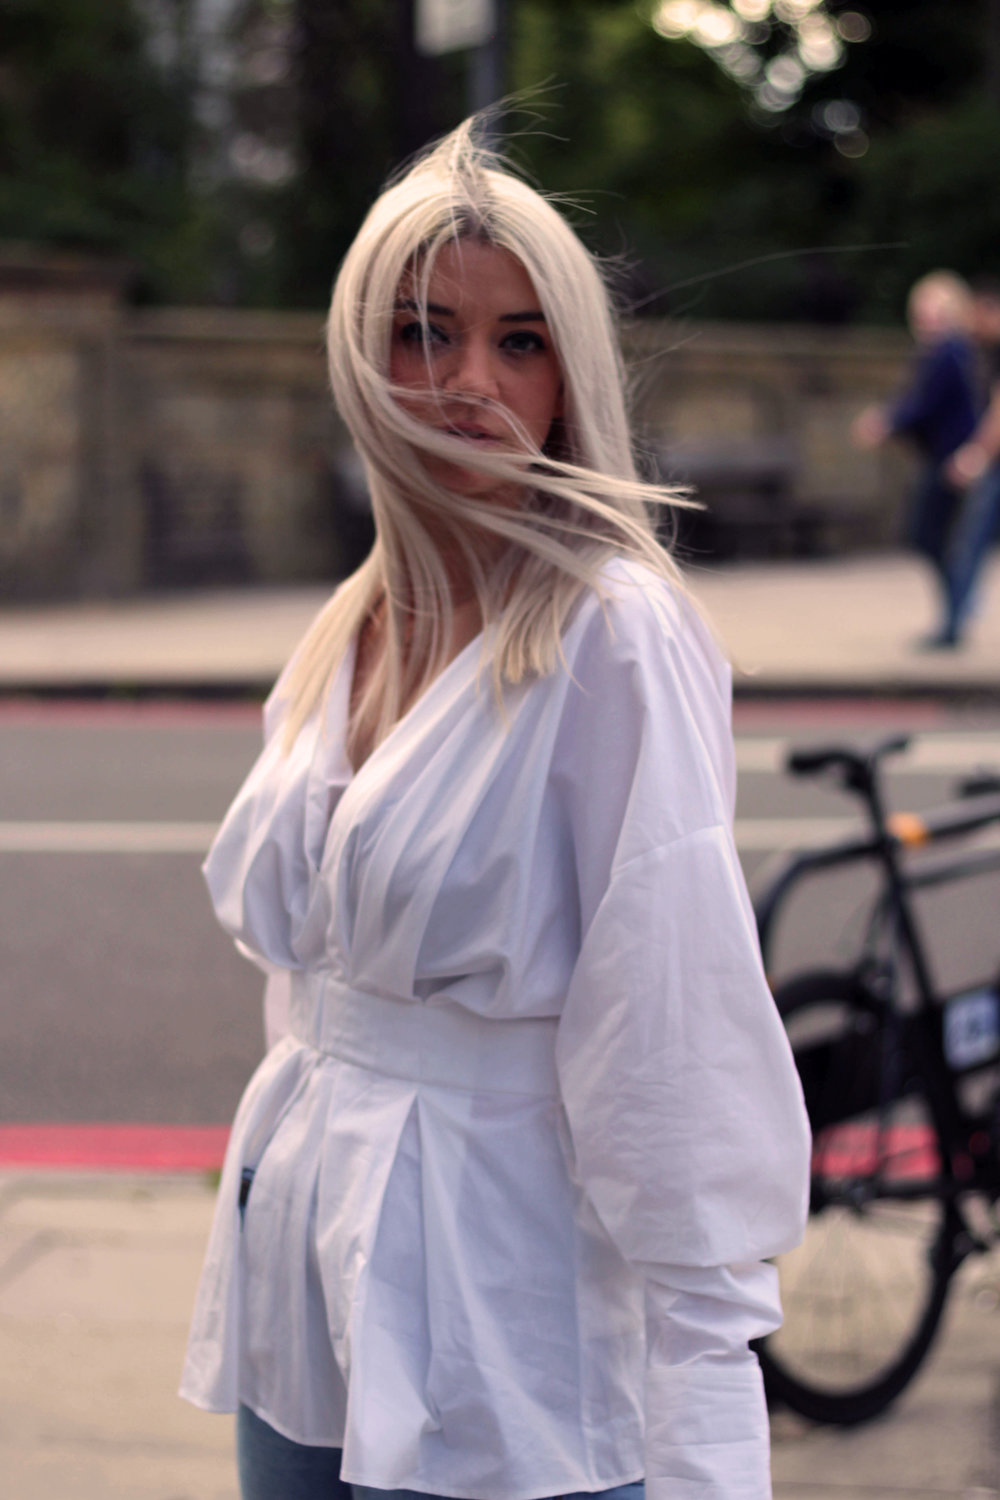 white shirt, topshop jeans, oriental sandals, white blonde hair, northern magpie, joey taylor 2